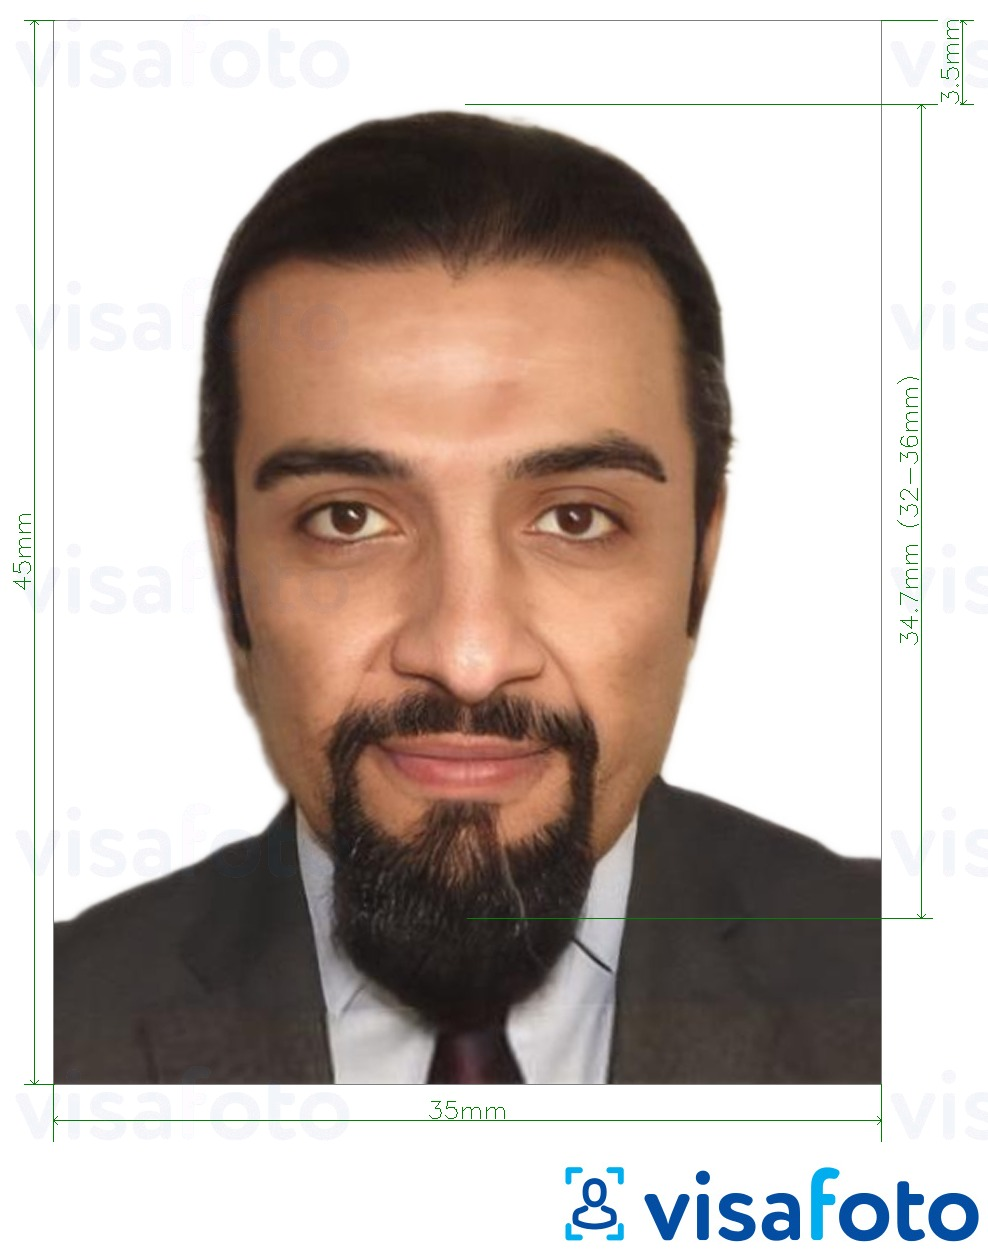 Example of photo for Algeria visa 35x45 mm (3.5x4.5 cm) with exact size specification